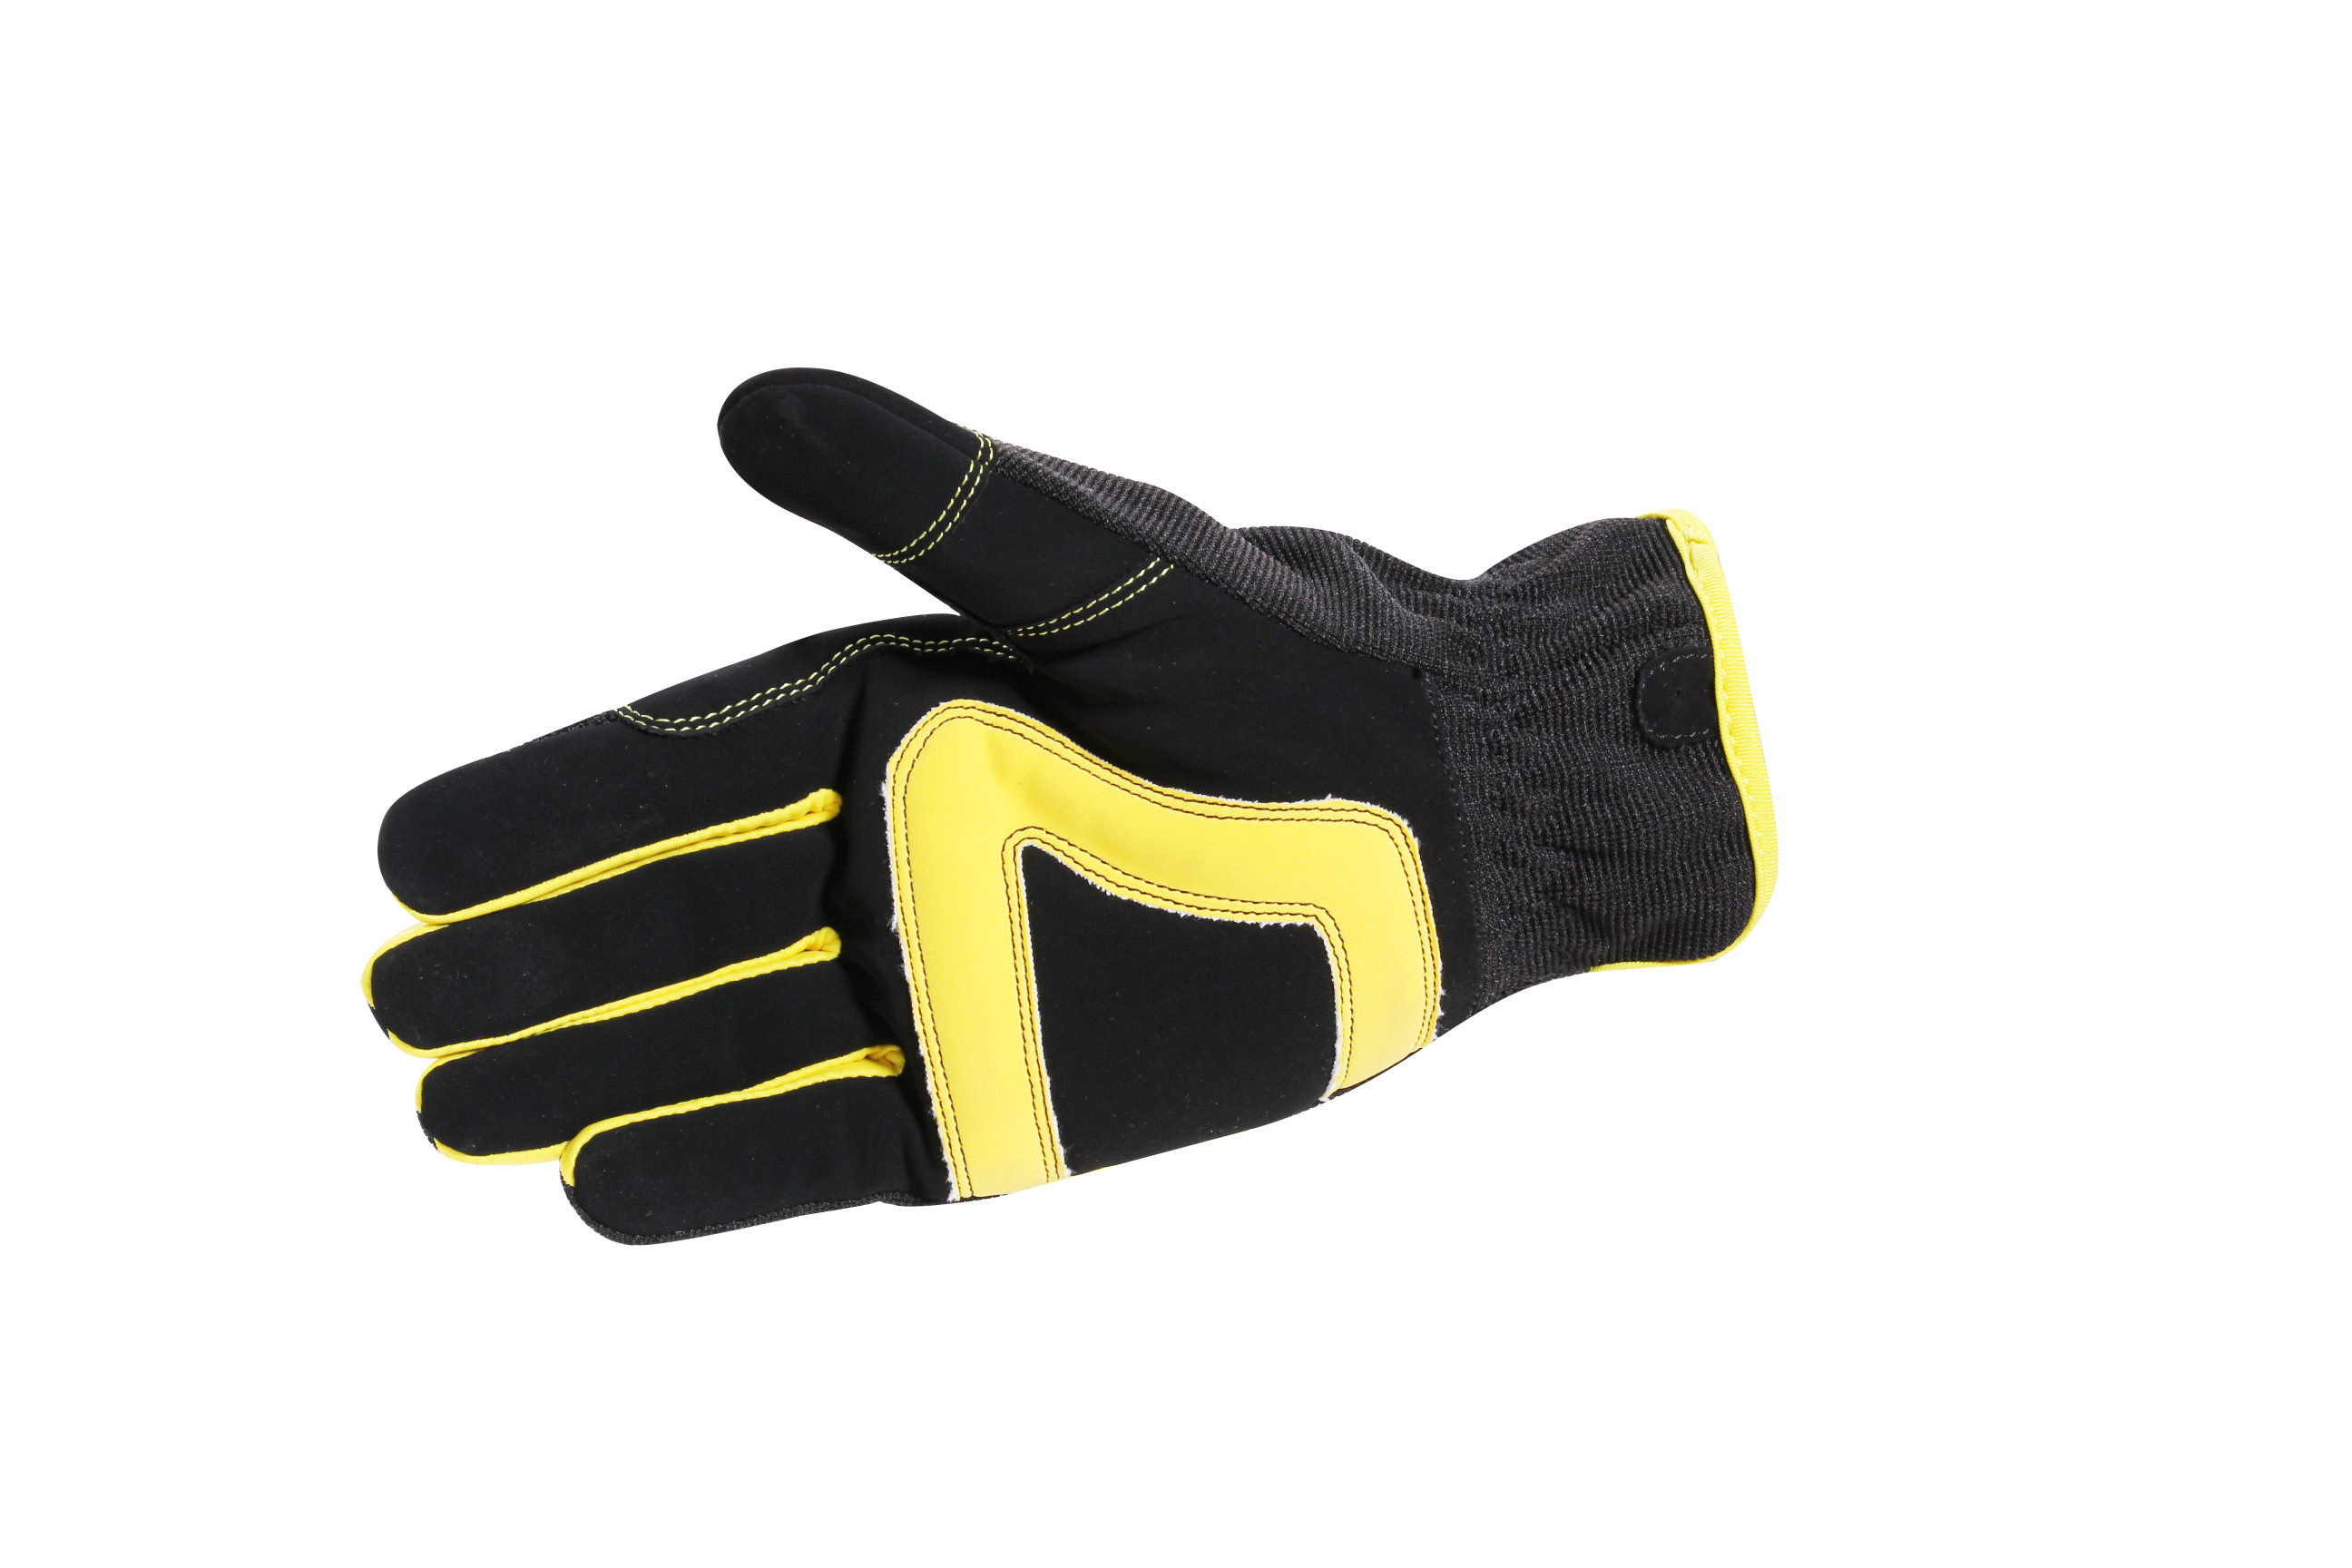 anti-slip protective factory gloves